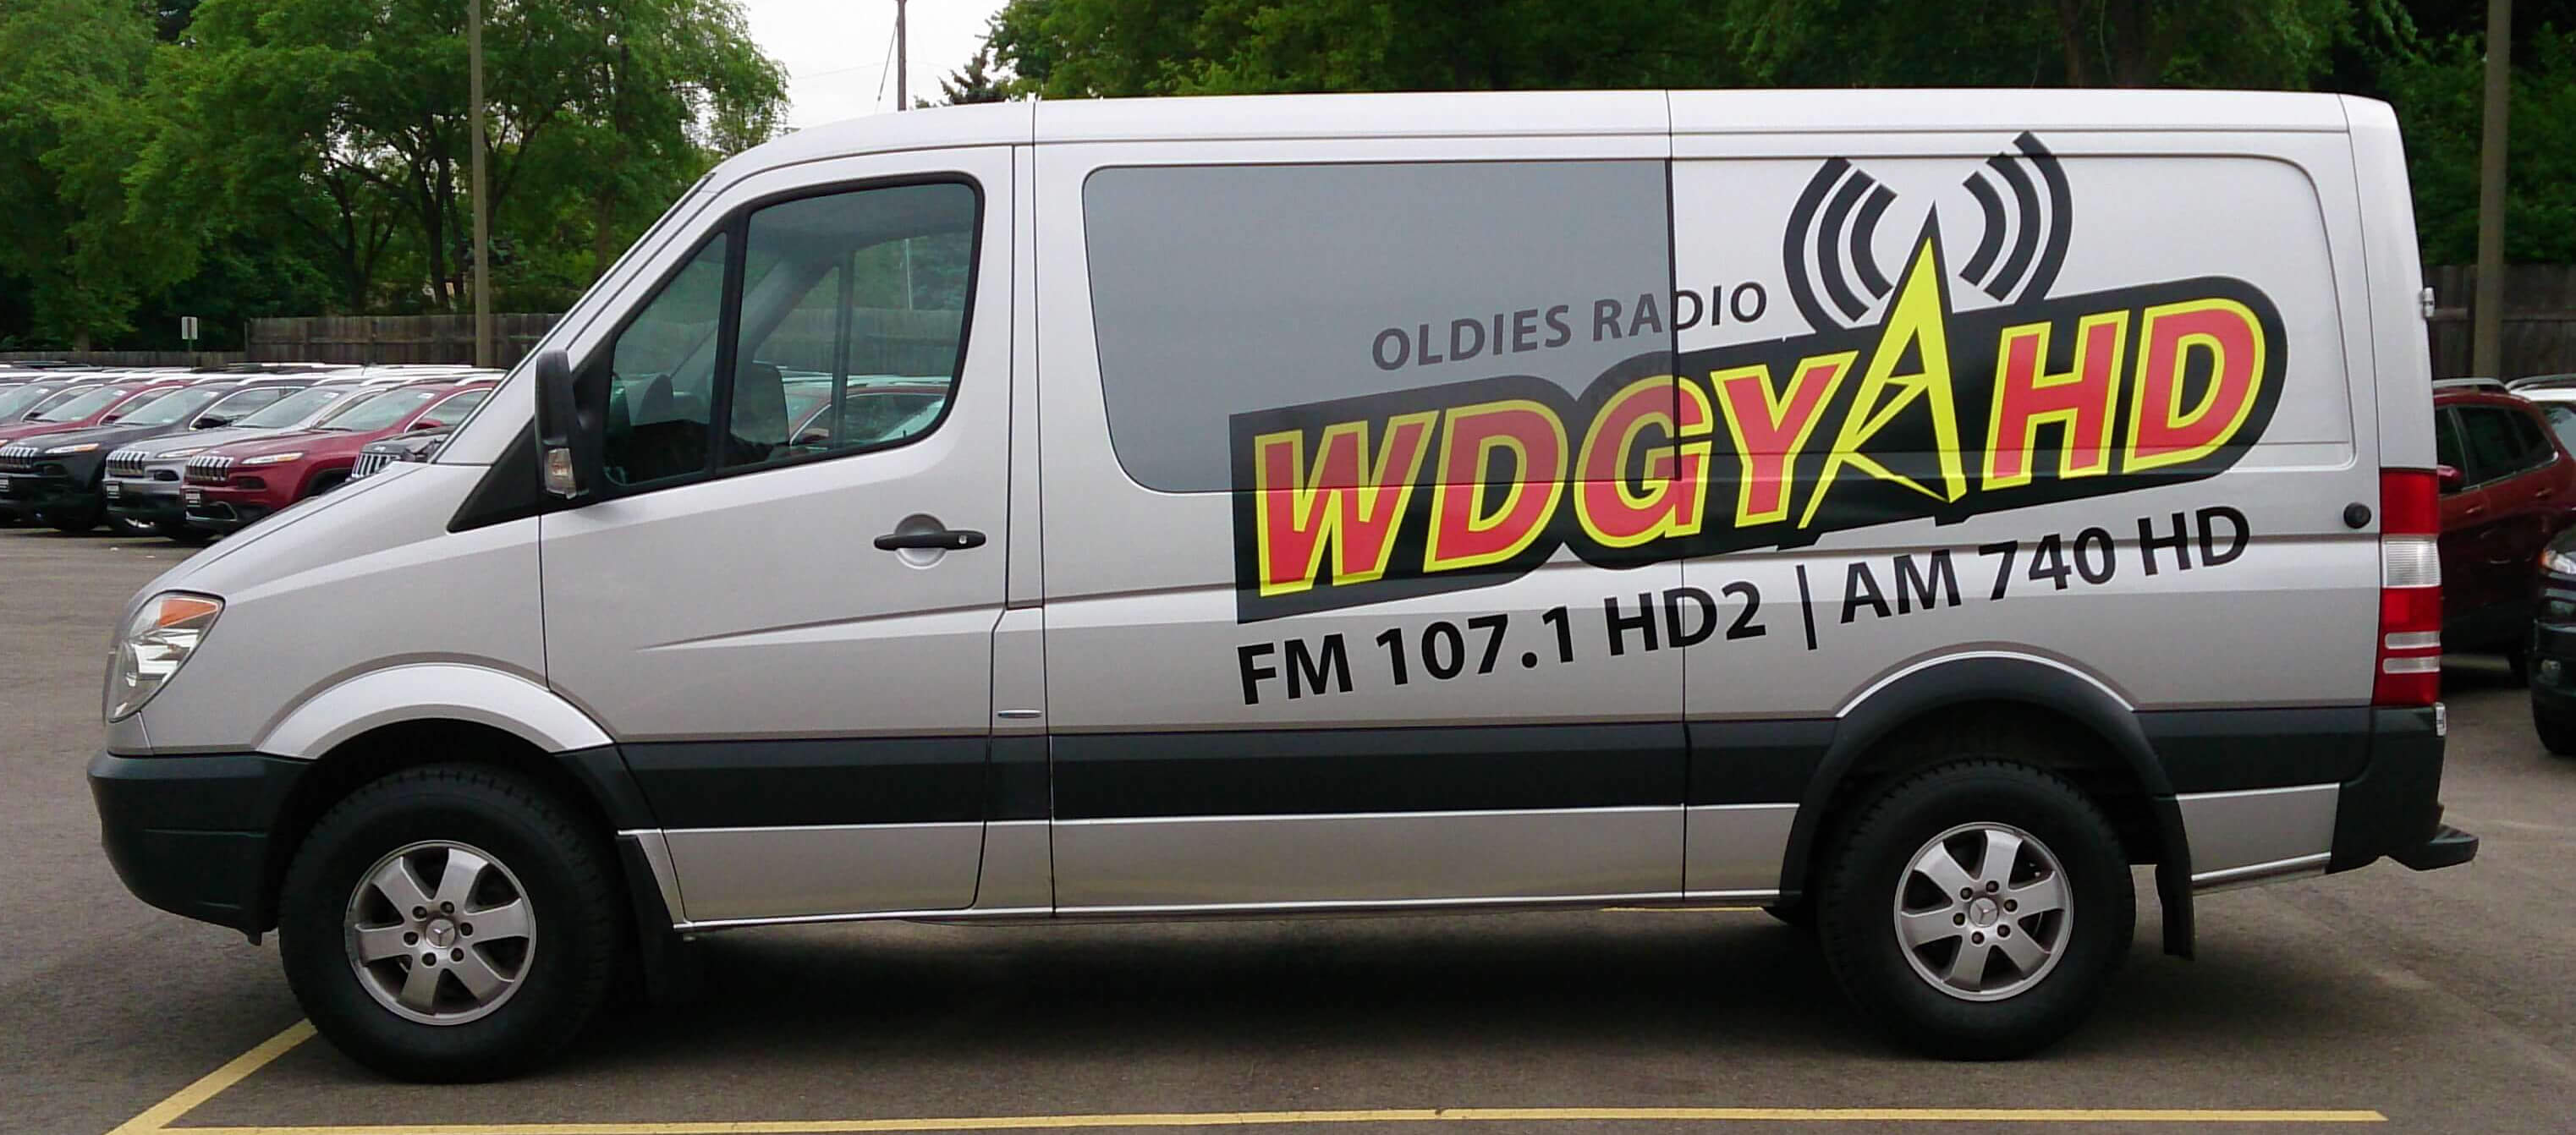 Radio Vehicle Vinyl Wrap